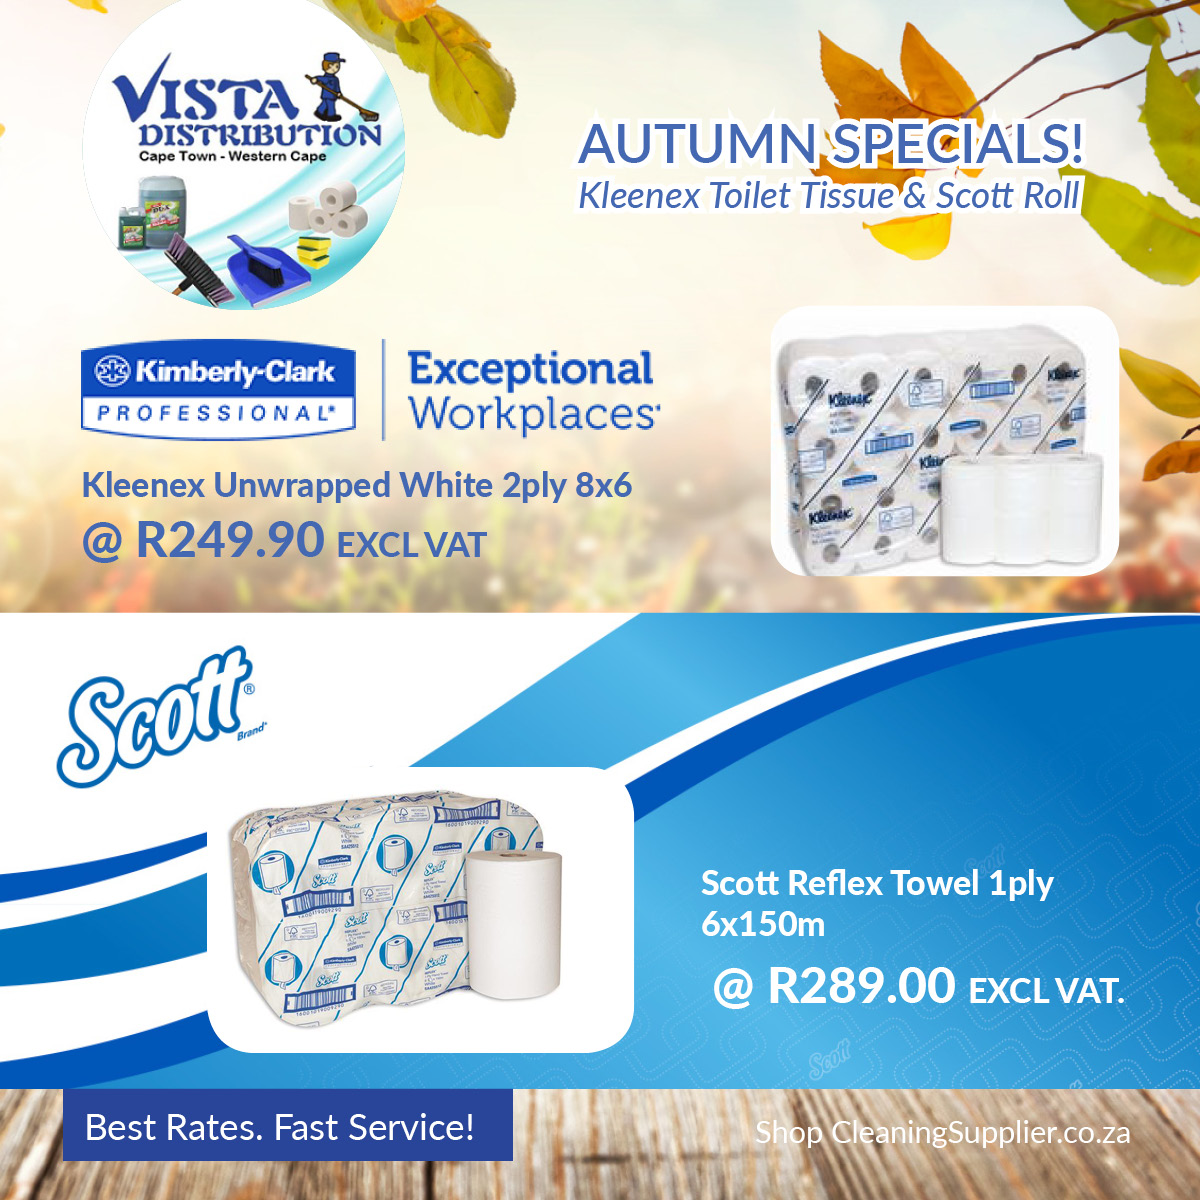 Cleaning and Catering Products at SUPER LOW PRICES!